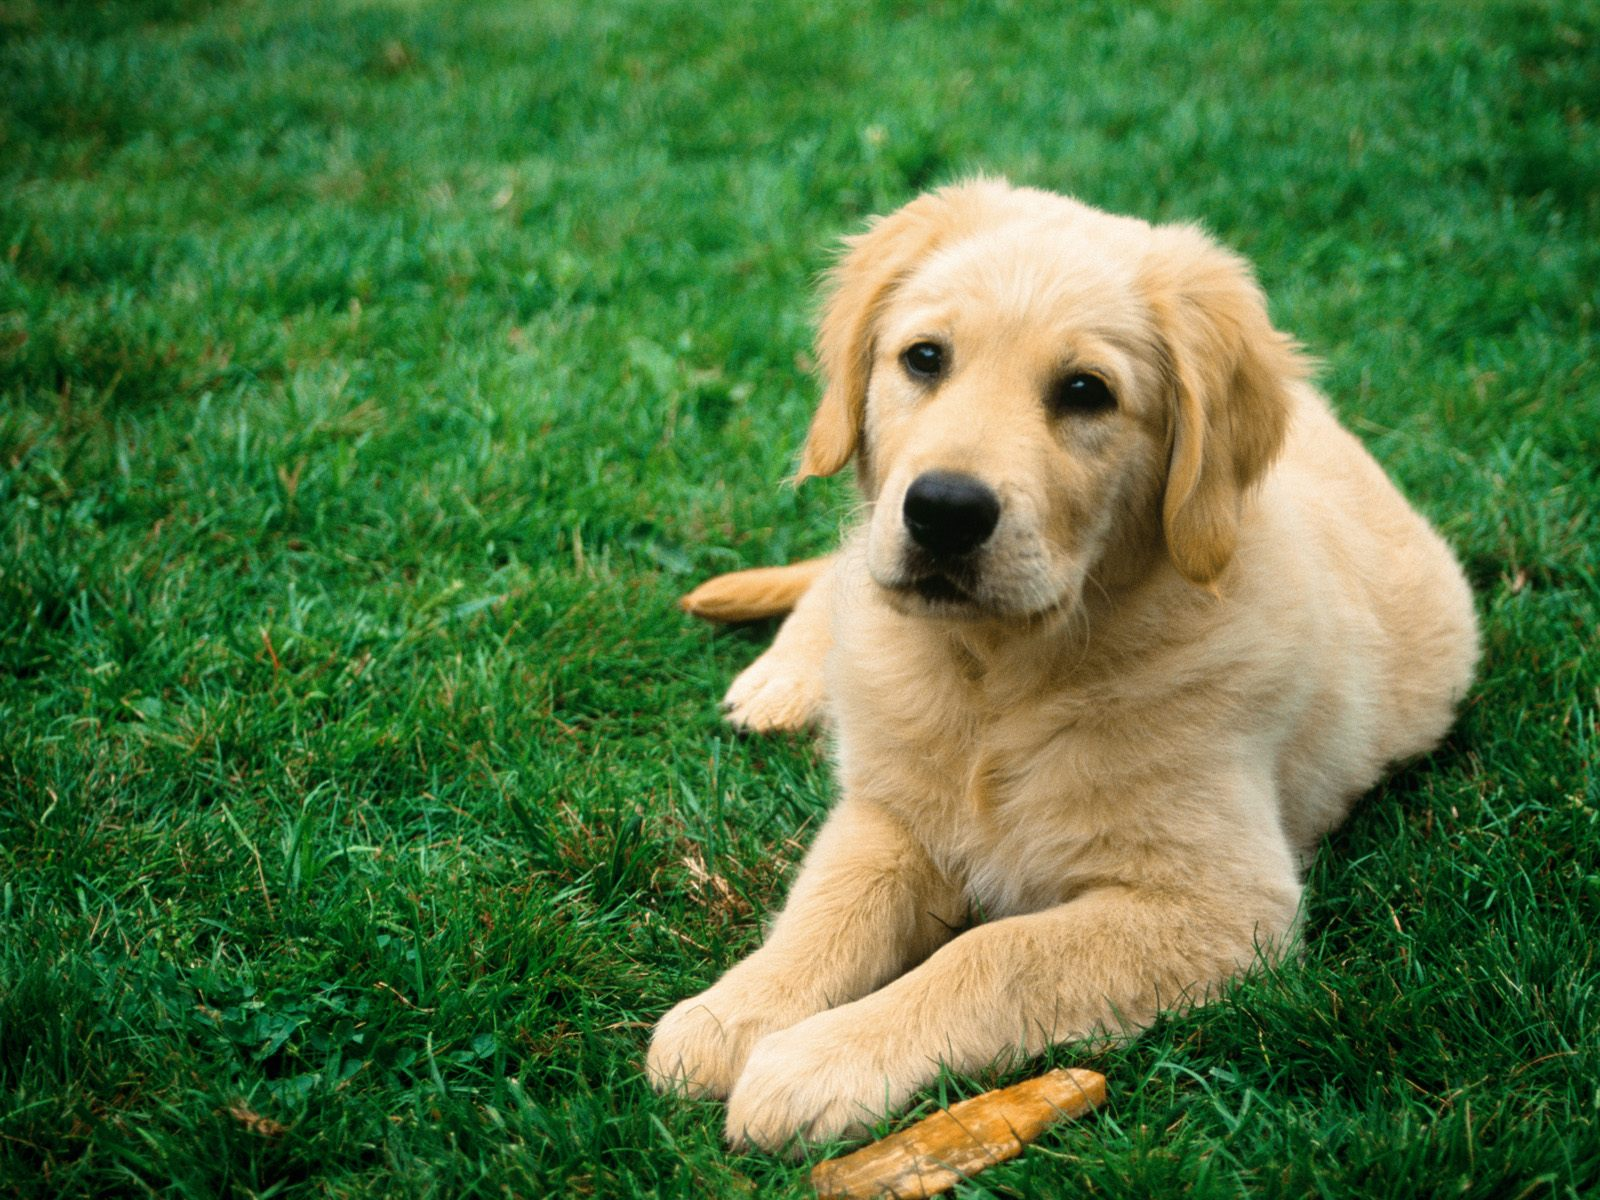 cute dog | baby dog hd wallpapers free download 1080p | wallpapers